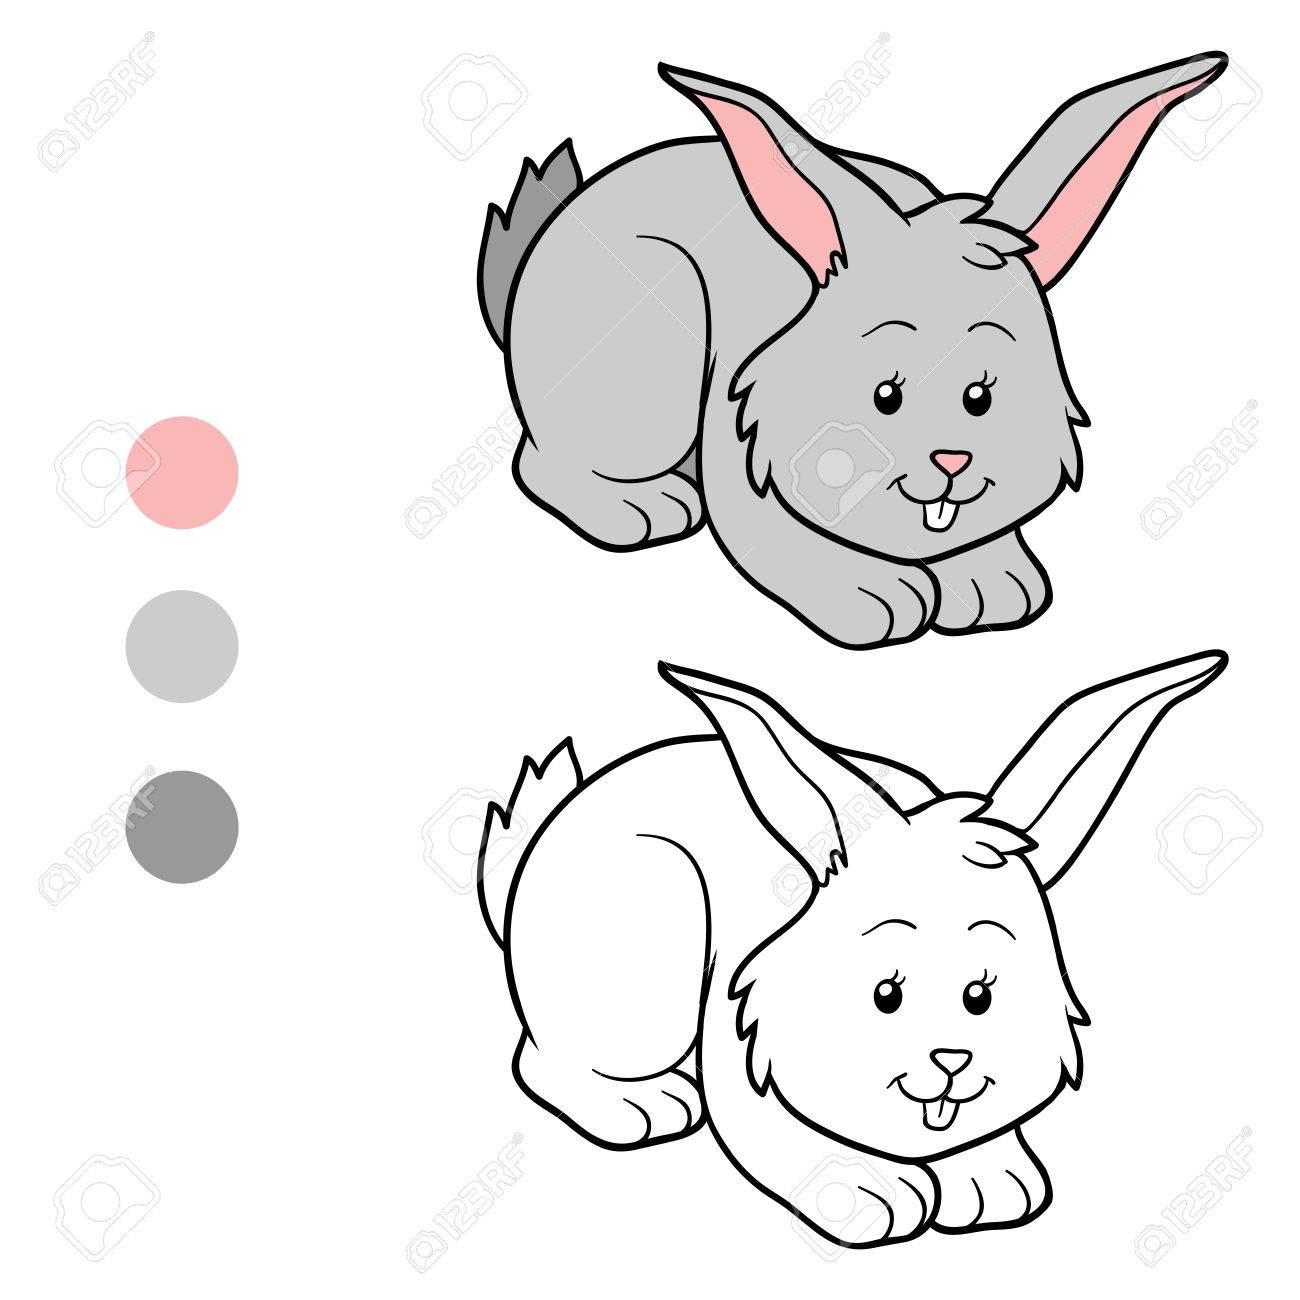 coloring book rabbit pictures : Game For Children Coloring Book Rabbit Stock Vector 40774338